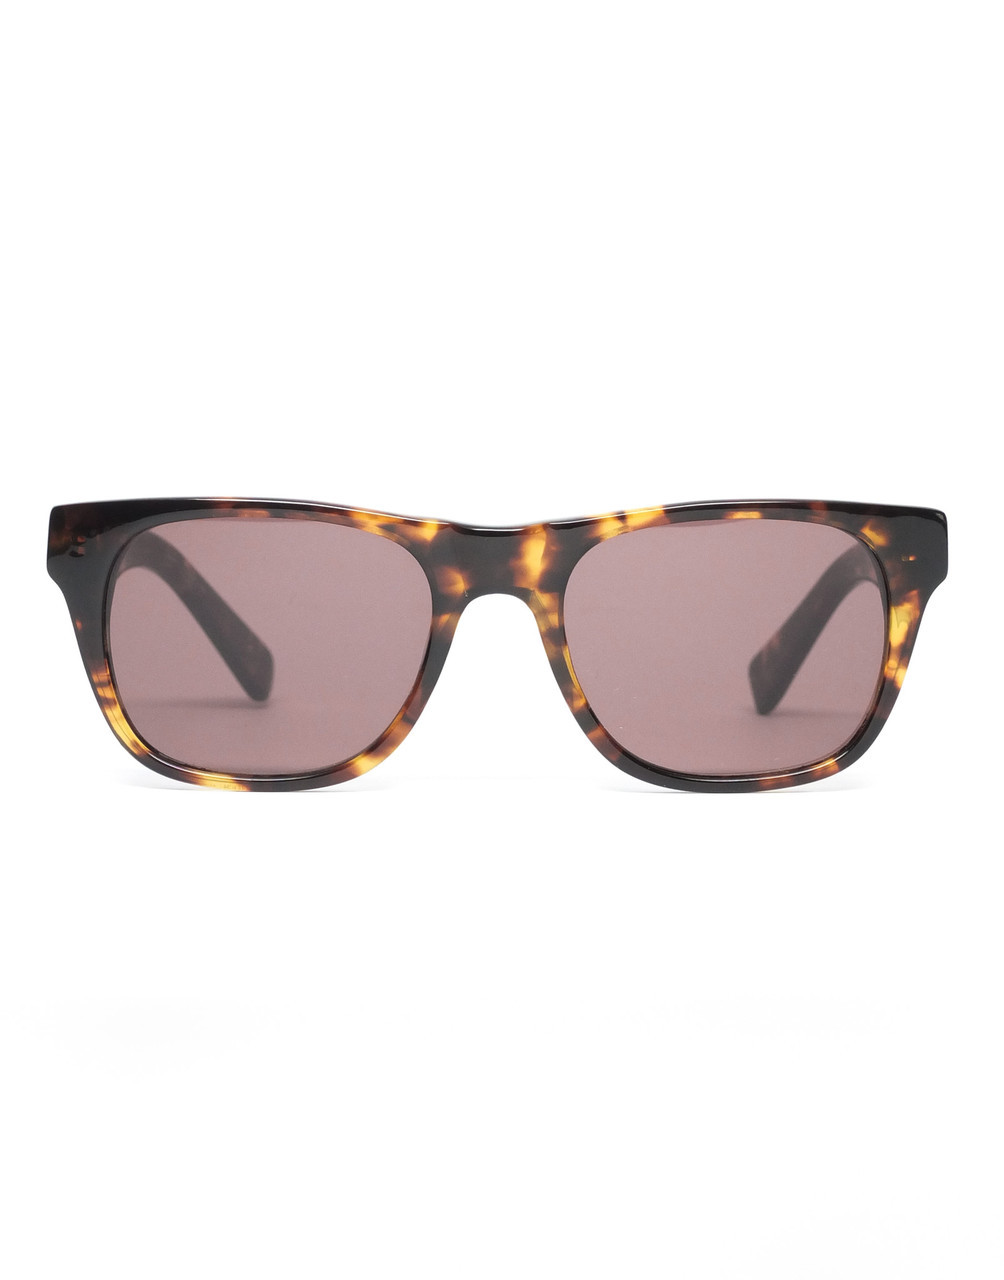 The Benjamin Sunglass